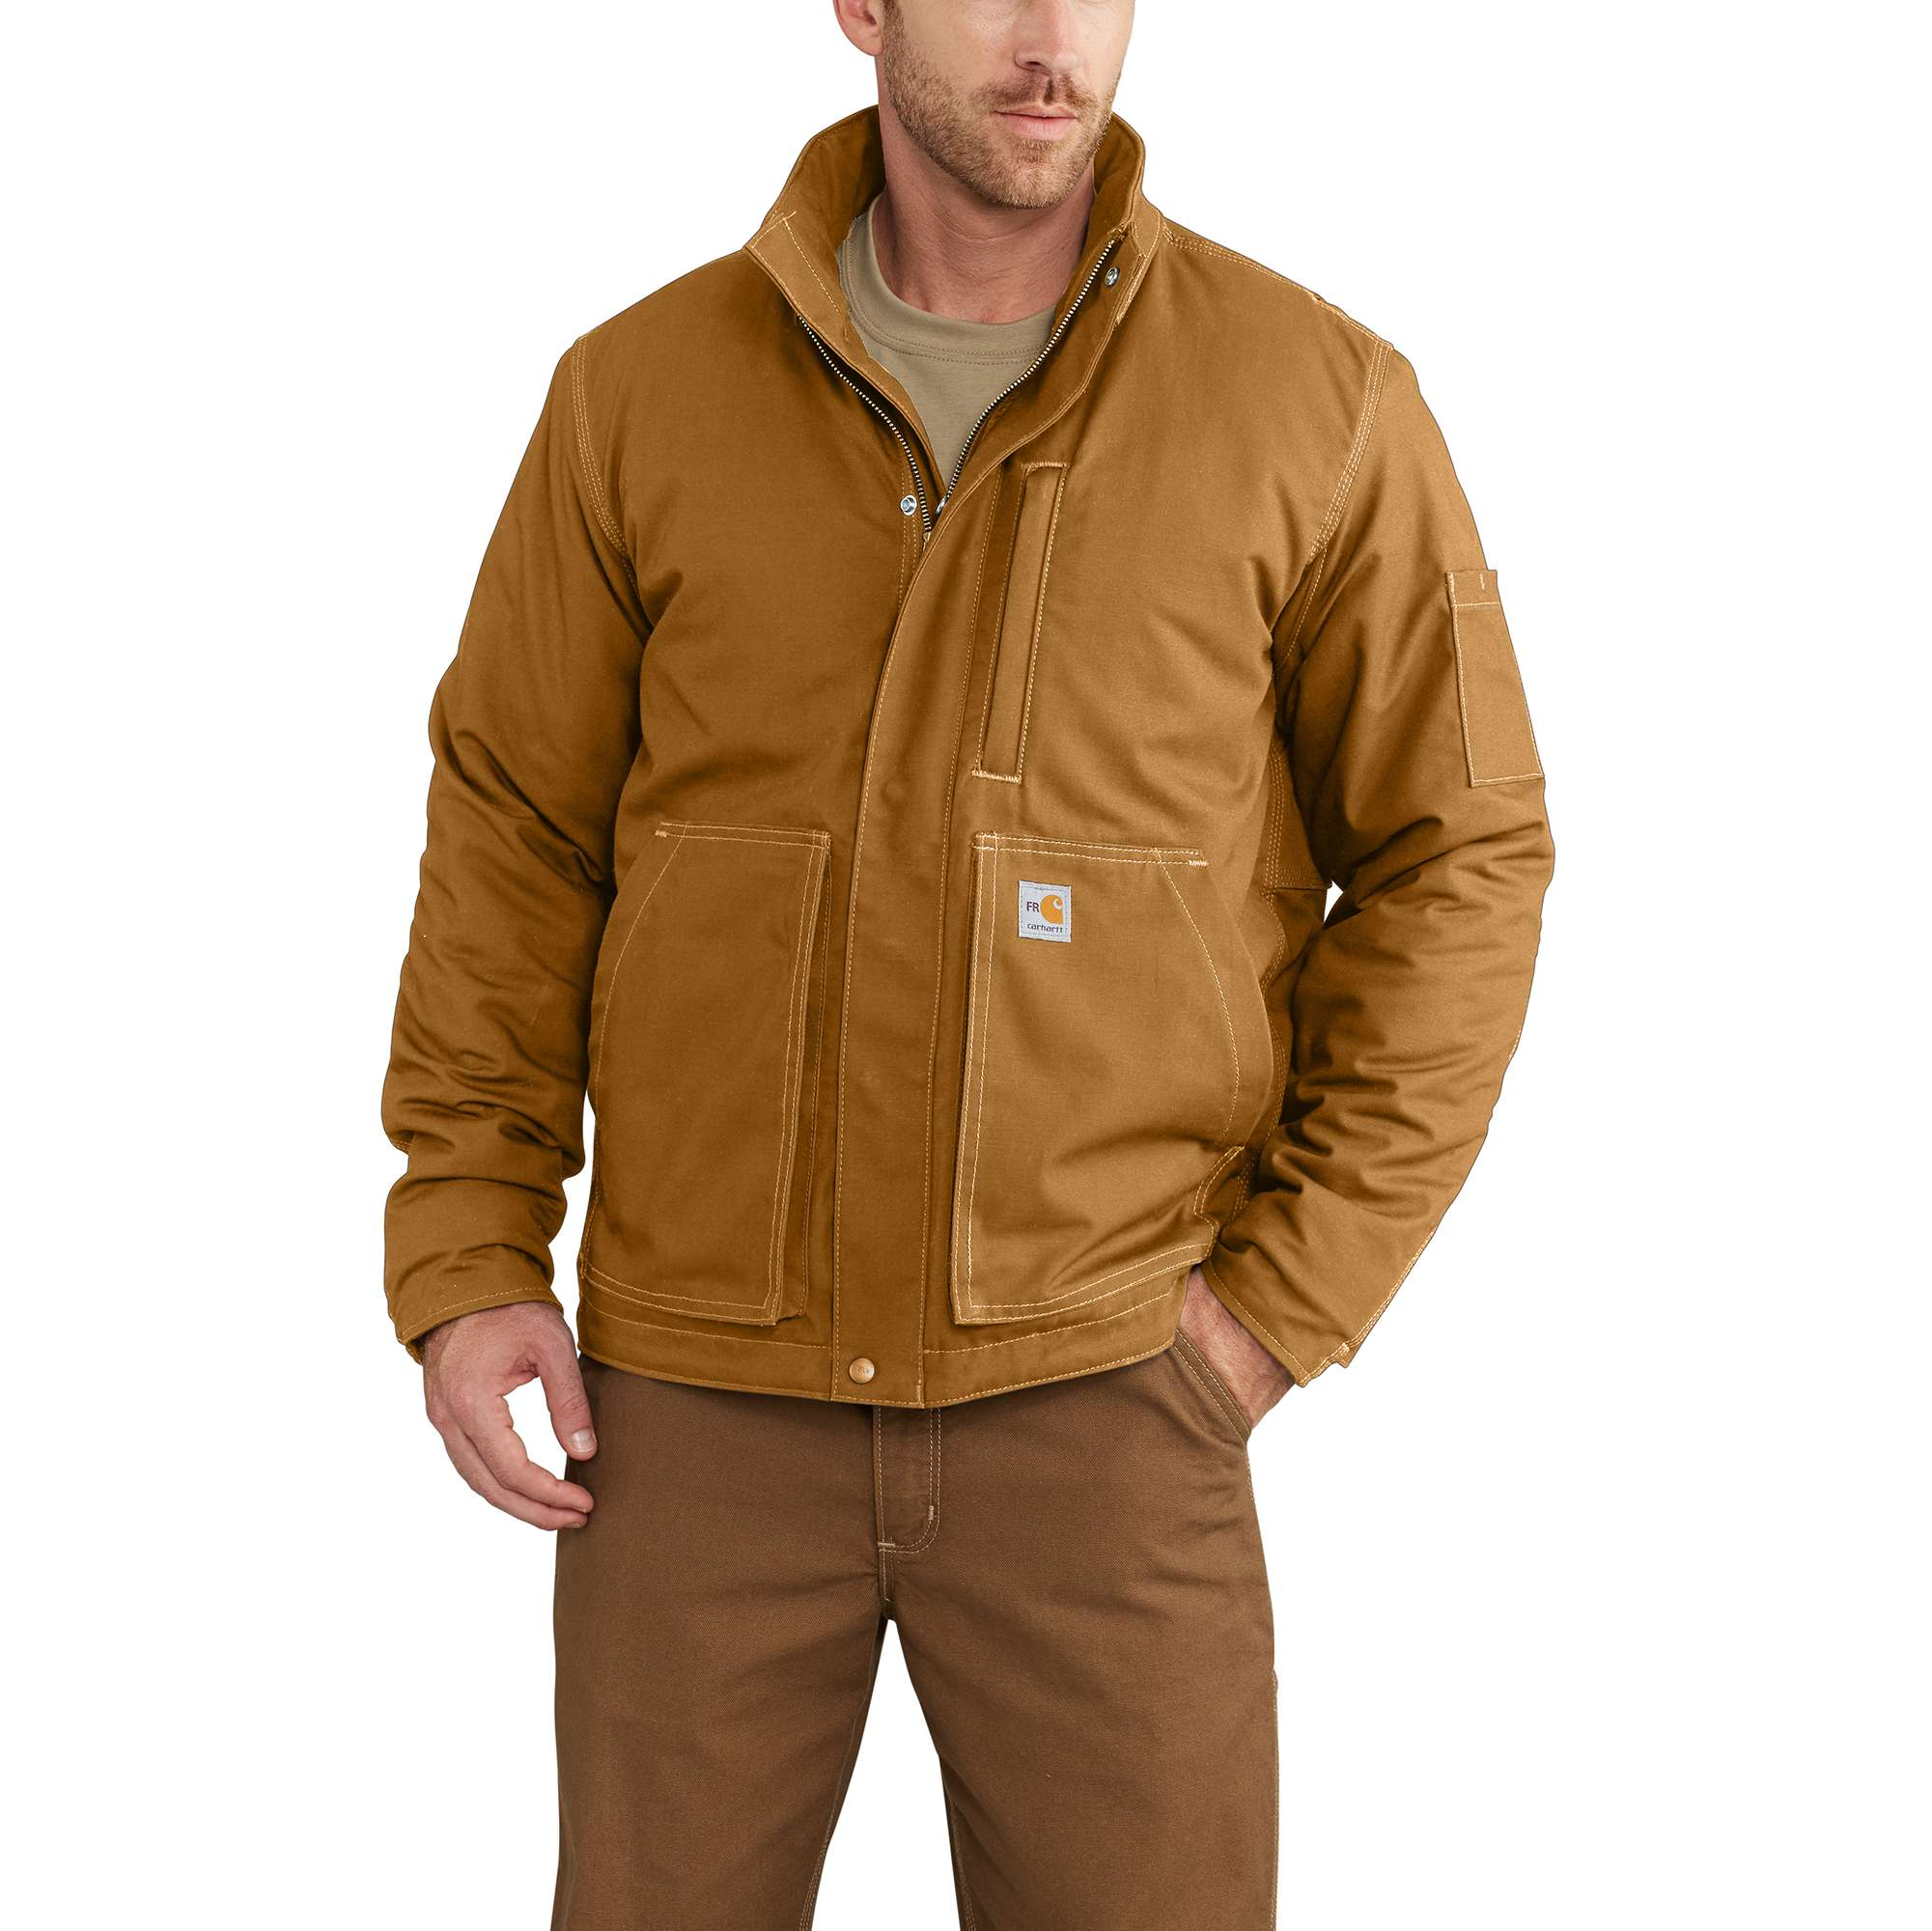 Carhartt Full Swing Quick Duck Flame-Resistant Lanyard Access Jacket